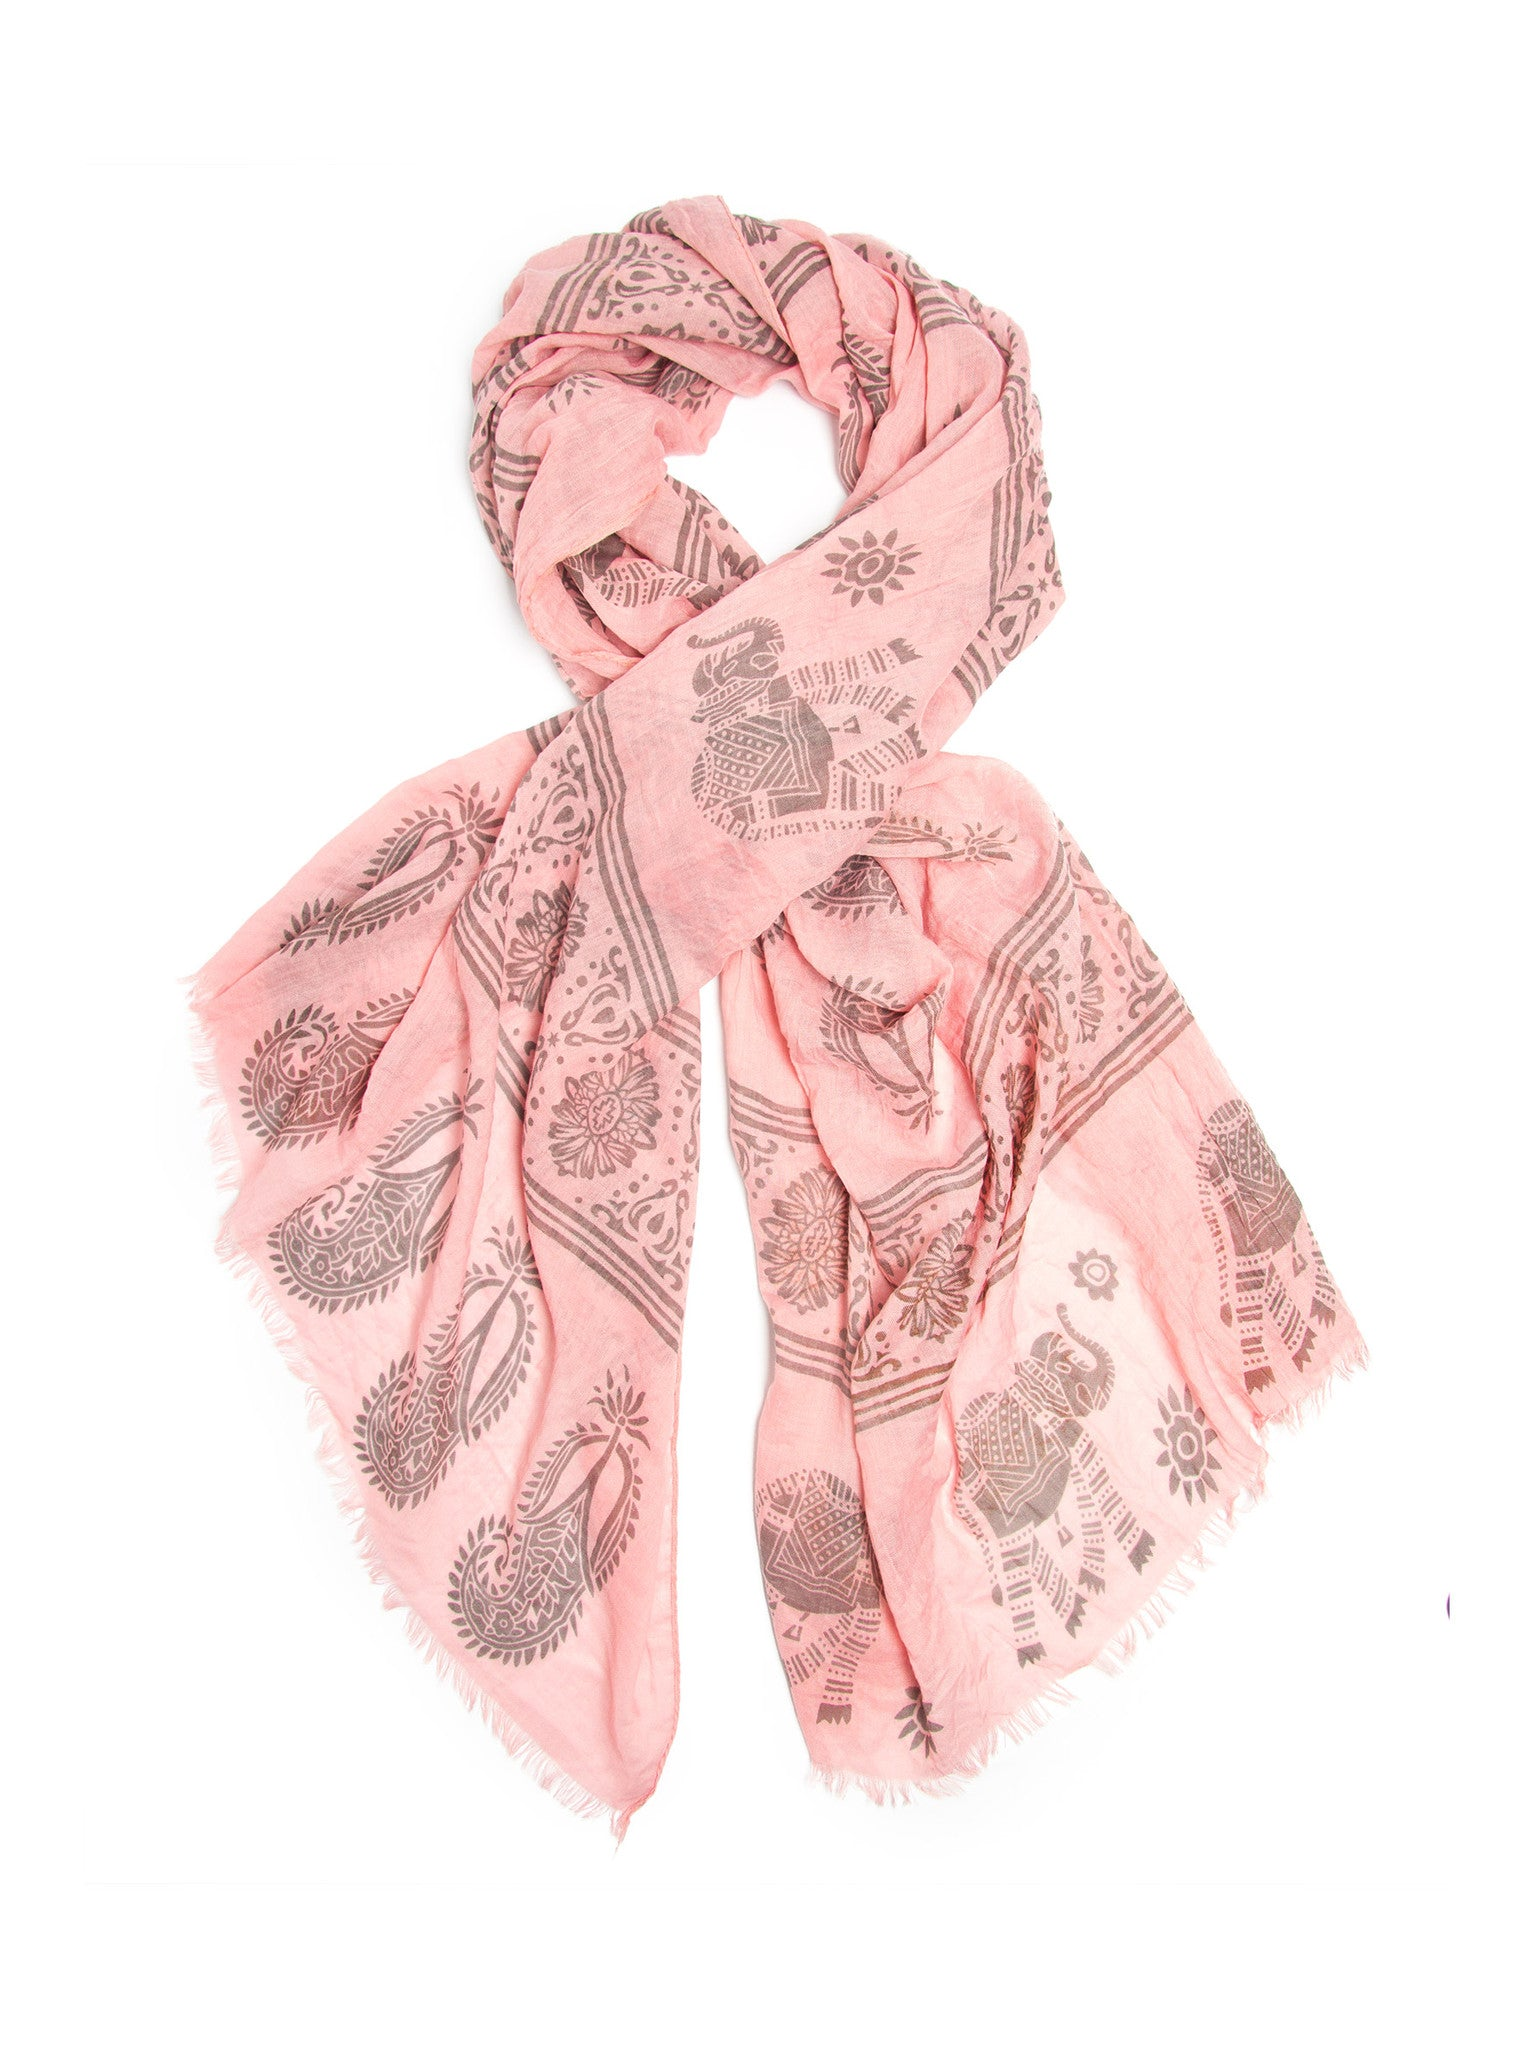 Scarves - Gajai Shawl,100% Cotton Paisley Indian Elephant Print Scarf -(Pink / One Size) Bohomonde  - 3